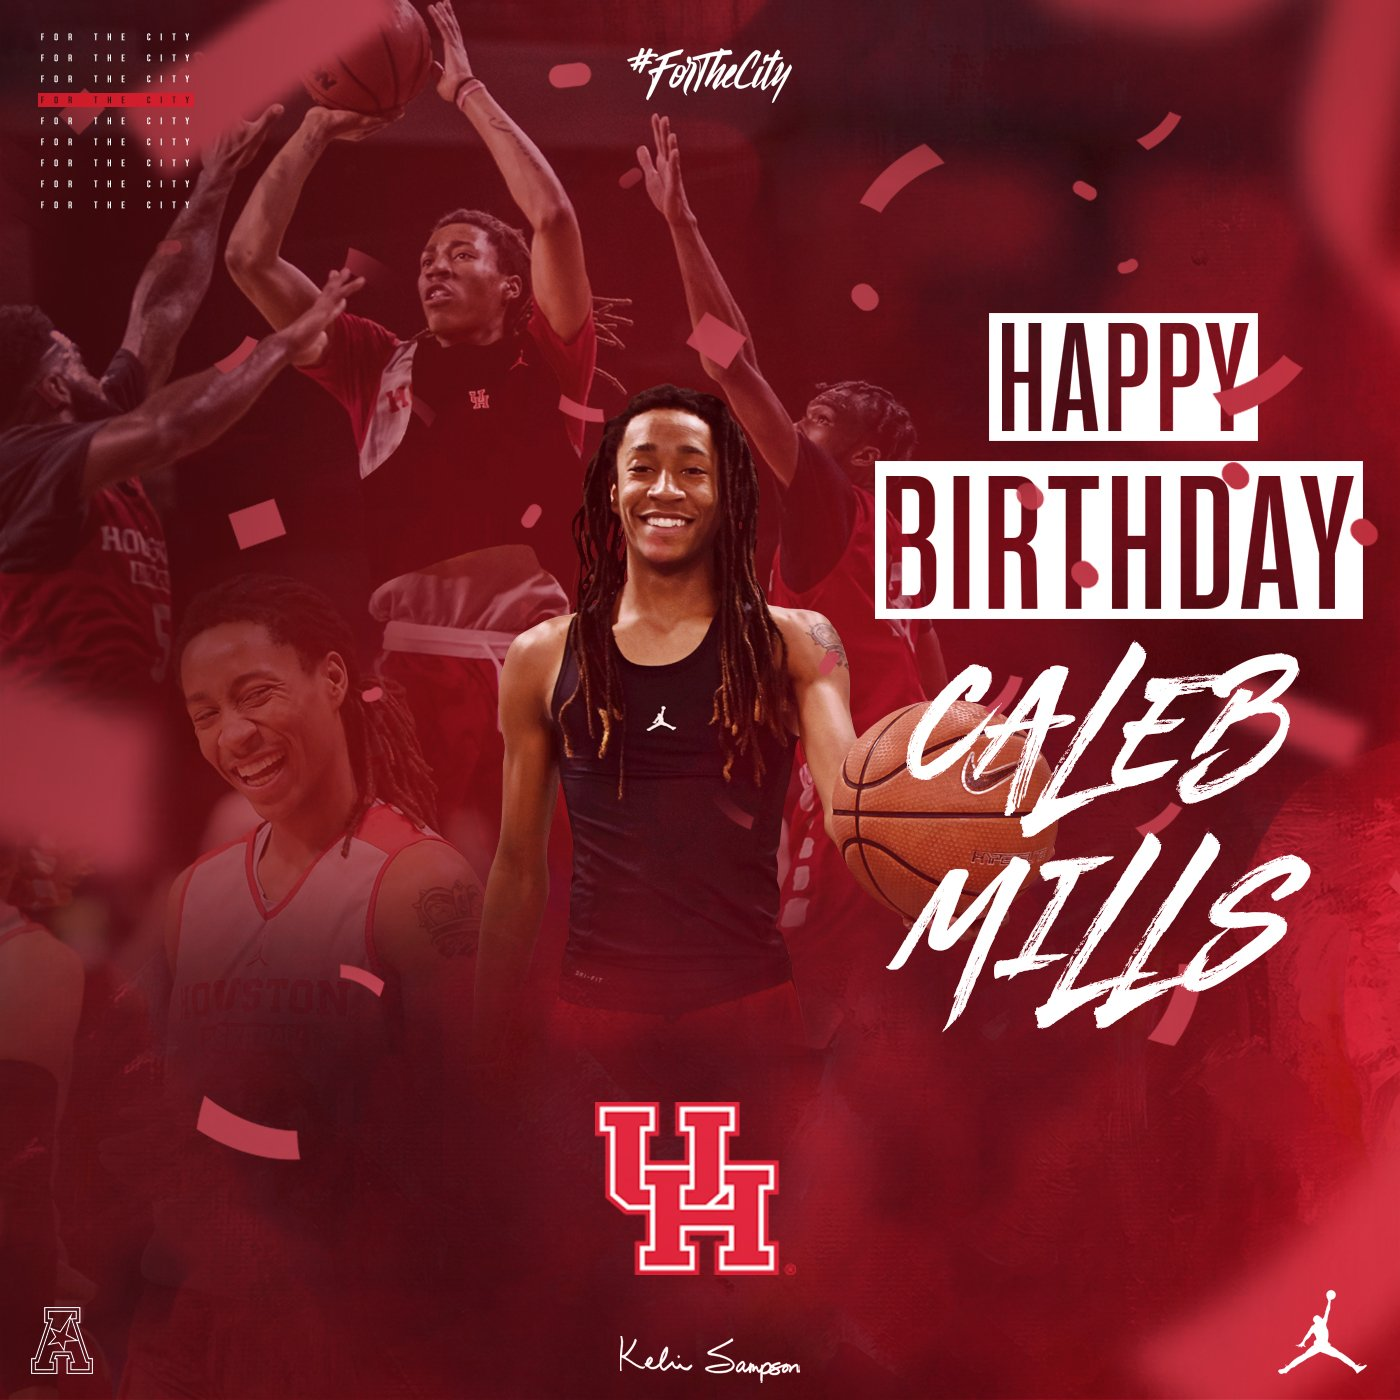 Houston Cougars NCAA Basketball: Join us as we wish HAPPY BIRTHDAY to redshirt freshman guard @calebmills_3   #ForTheCit...